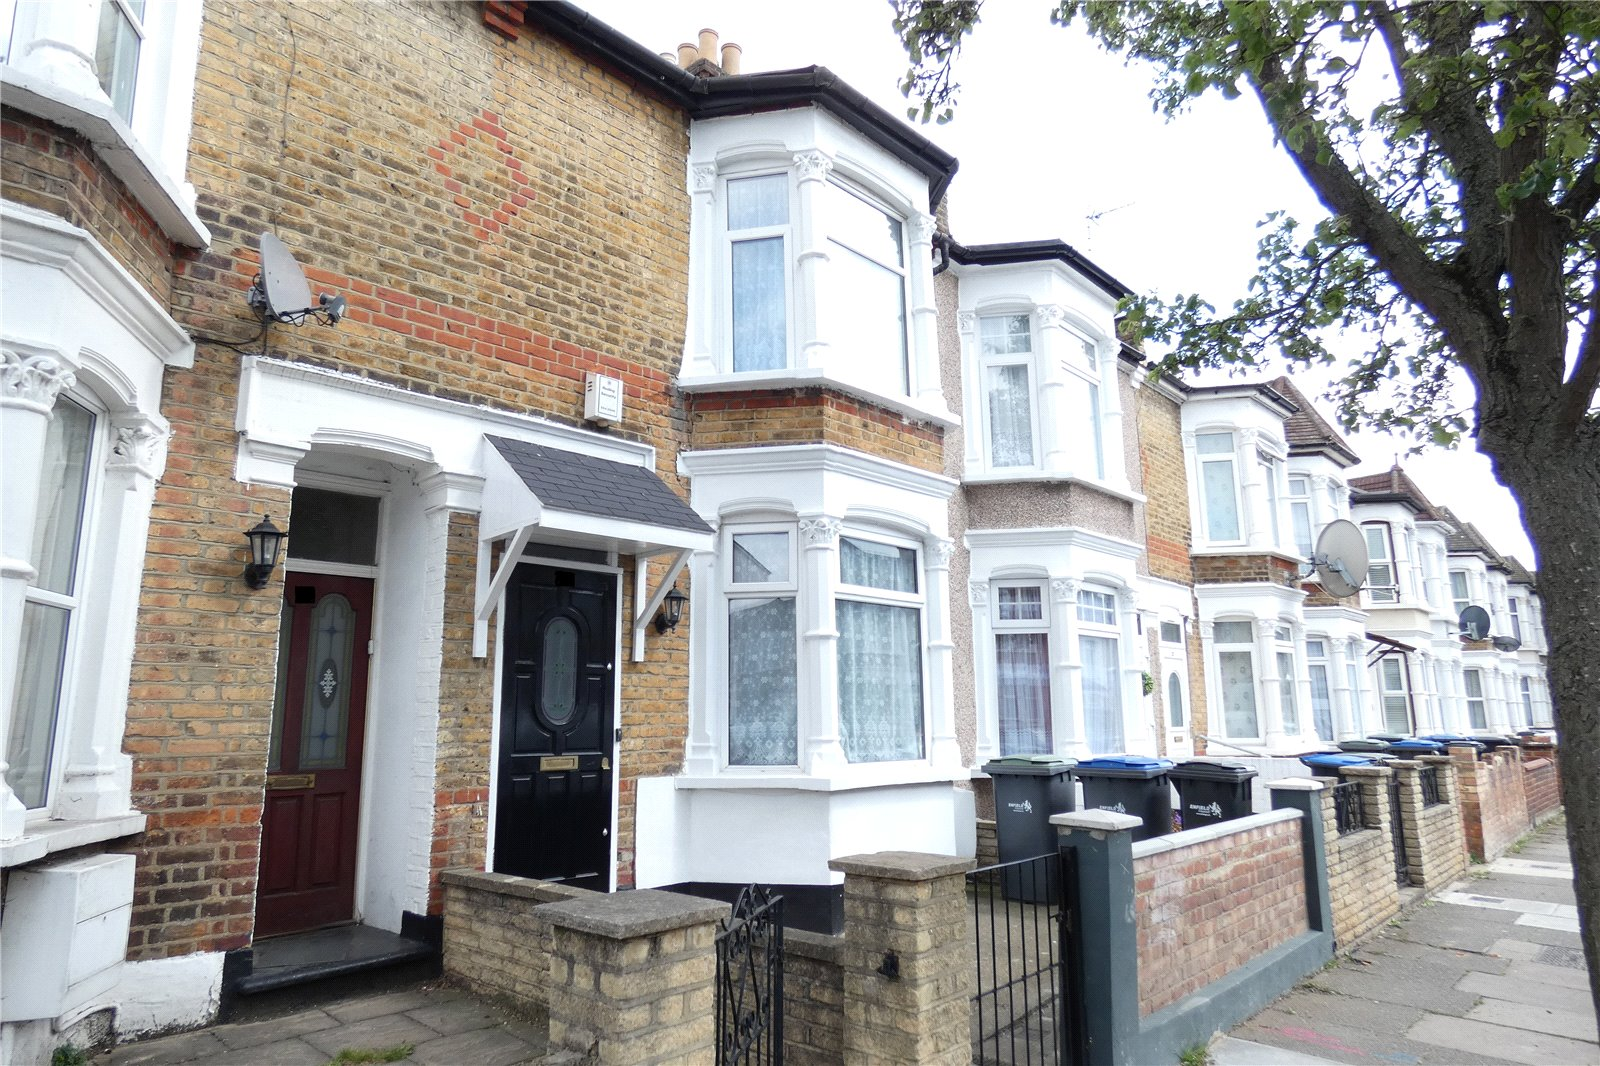 Lowden Road, Edmonton, London, N9